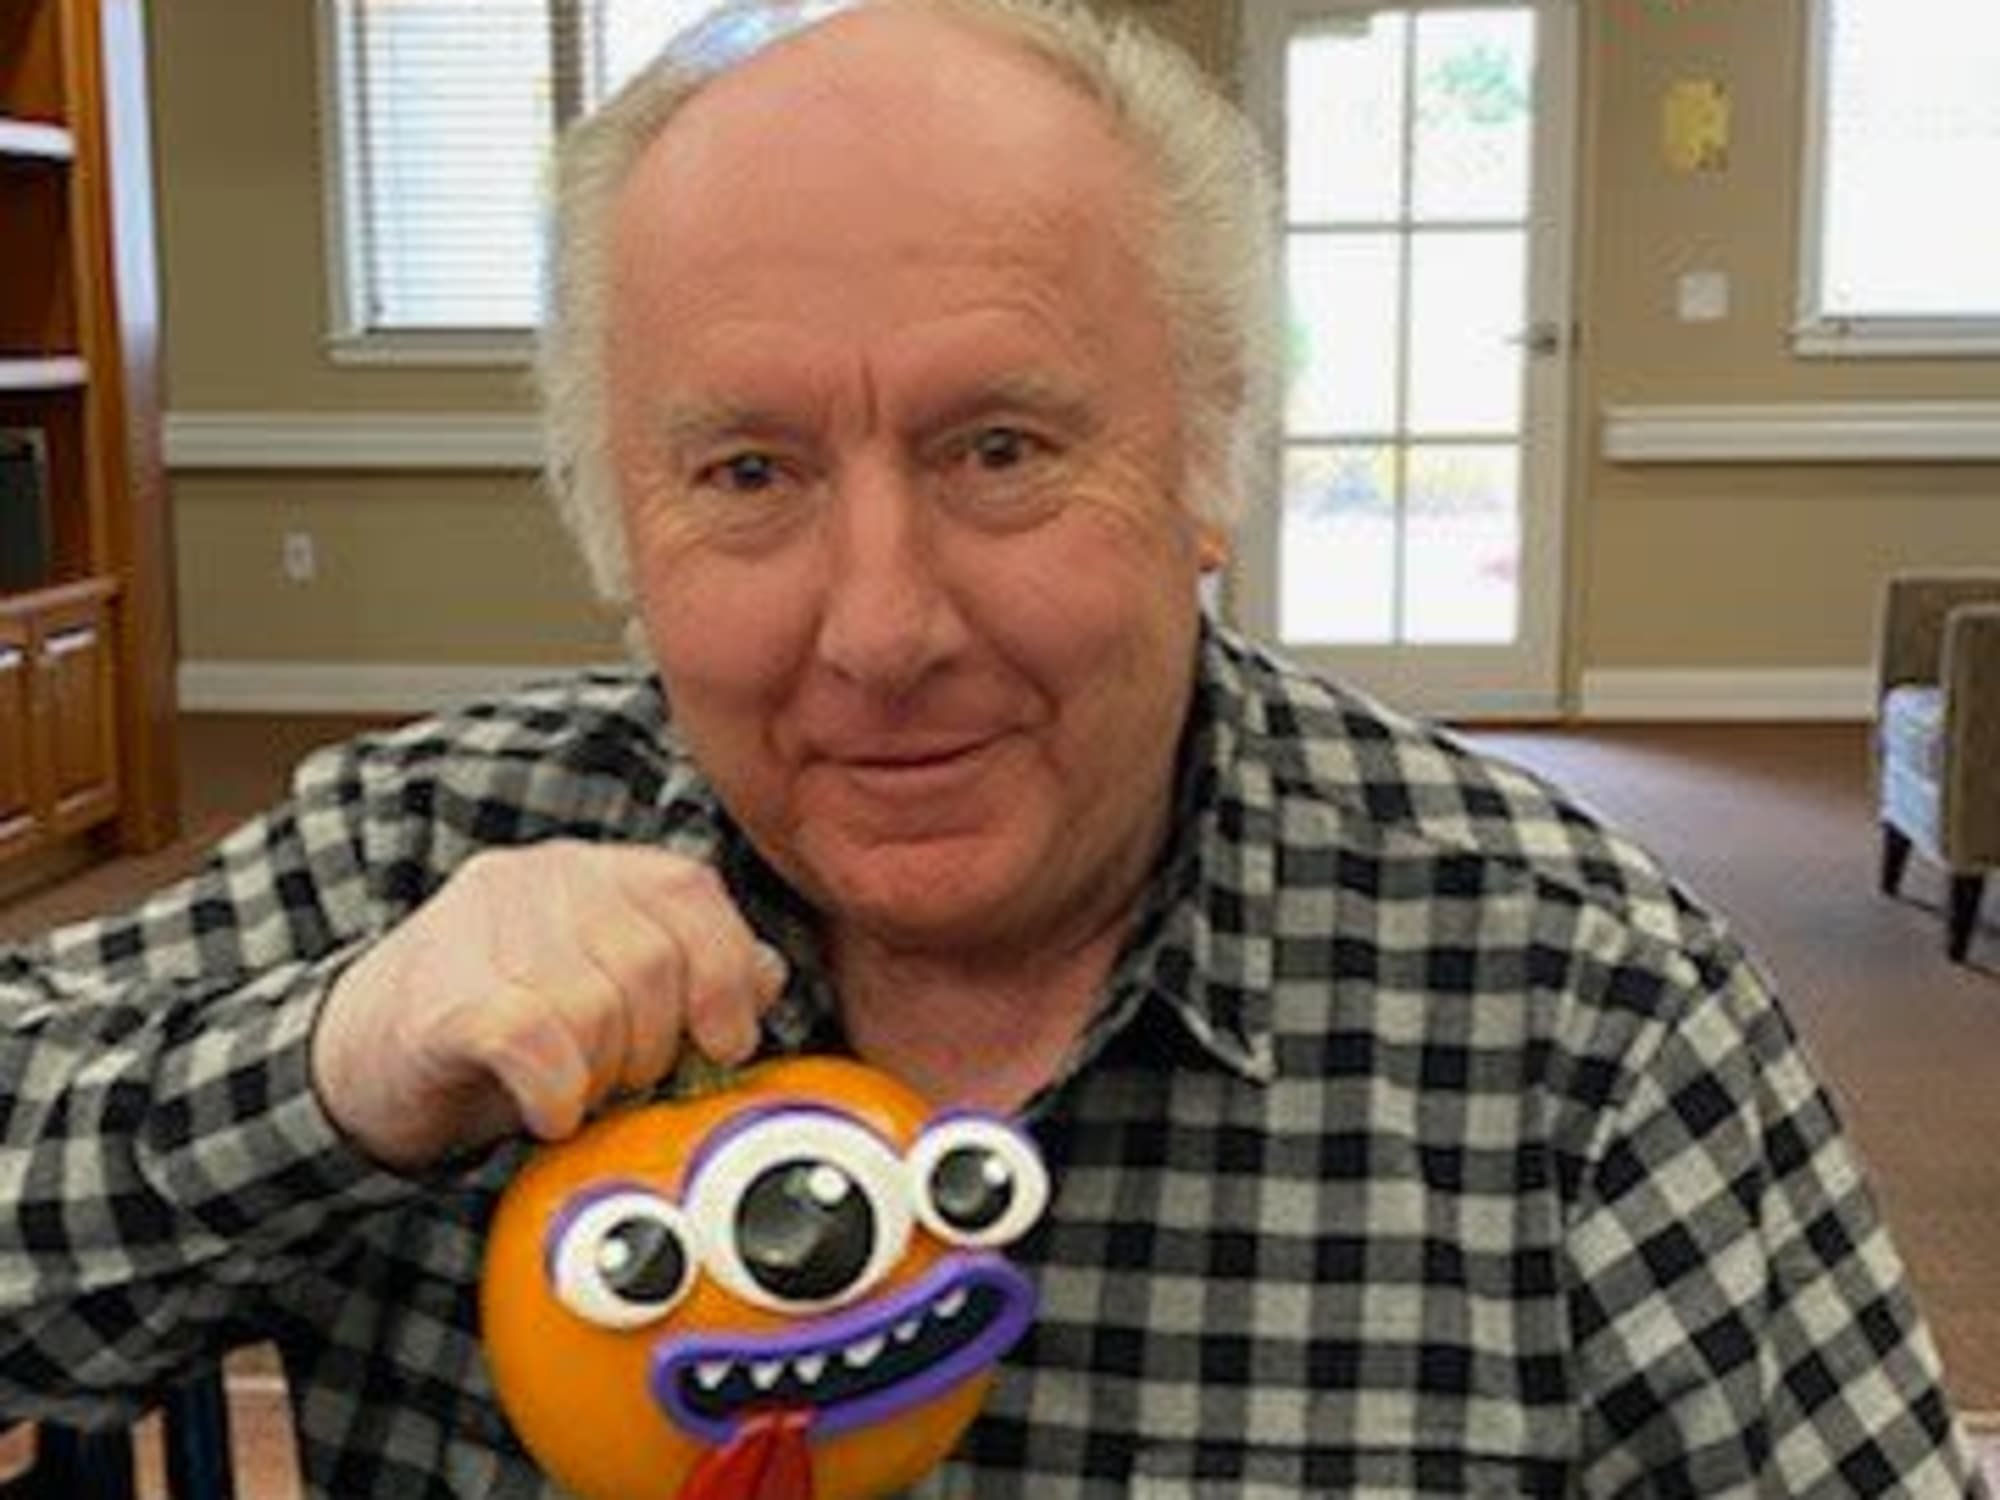 Decorated pumpkin at Seven Lakes Memory Care in Loveland, Colorado